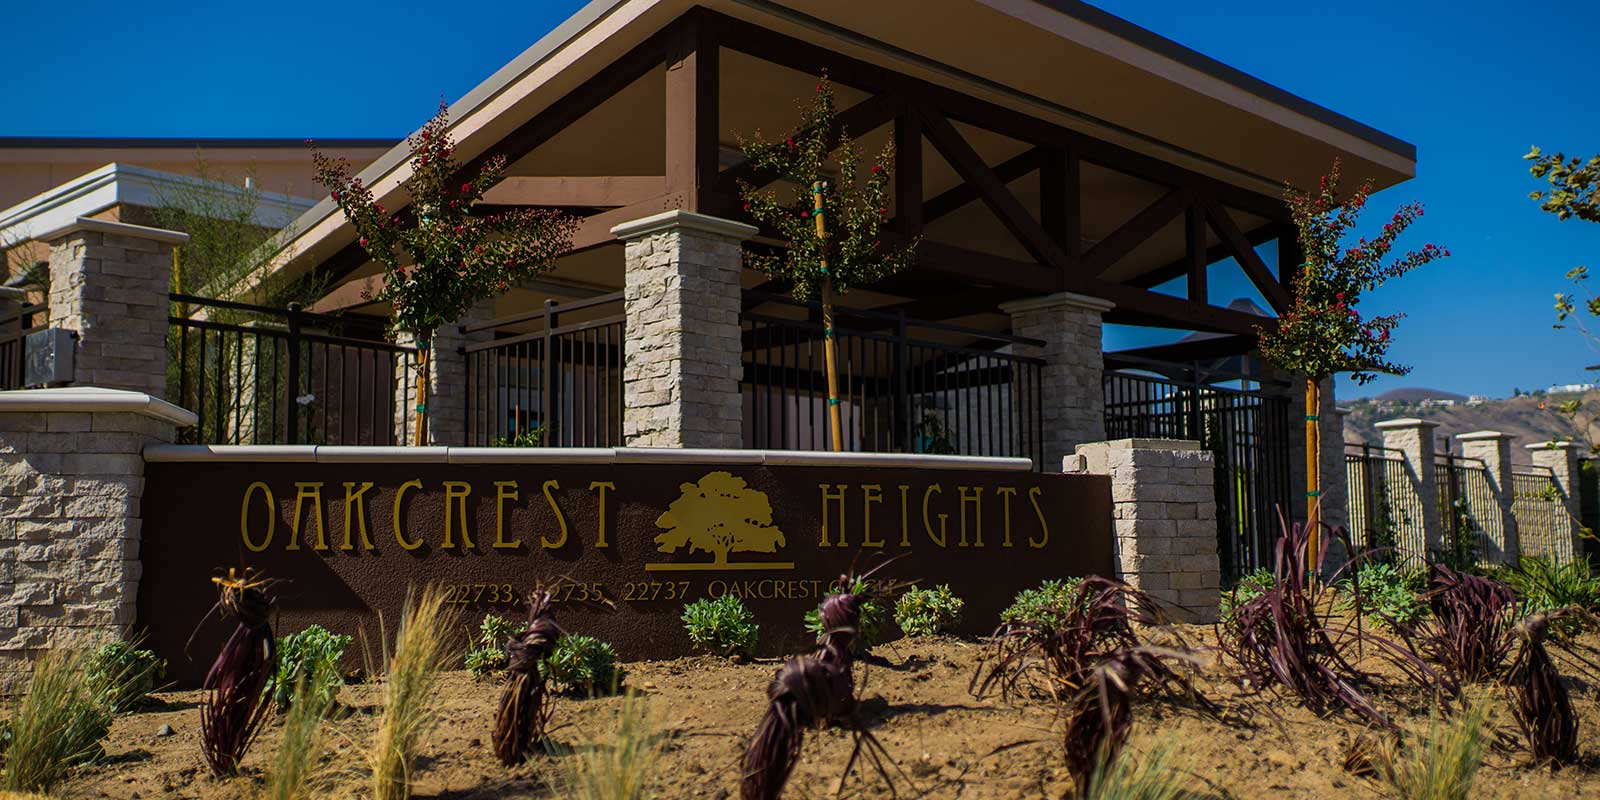 Oakcrest Heights, Yorba Linda, California